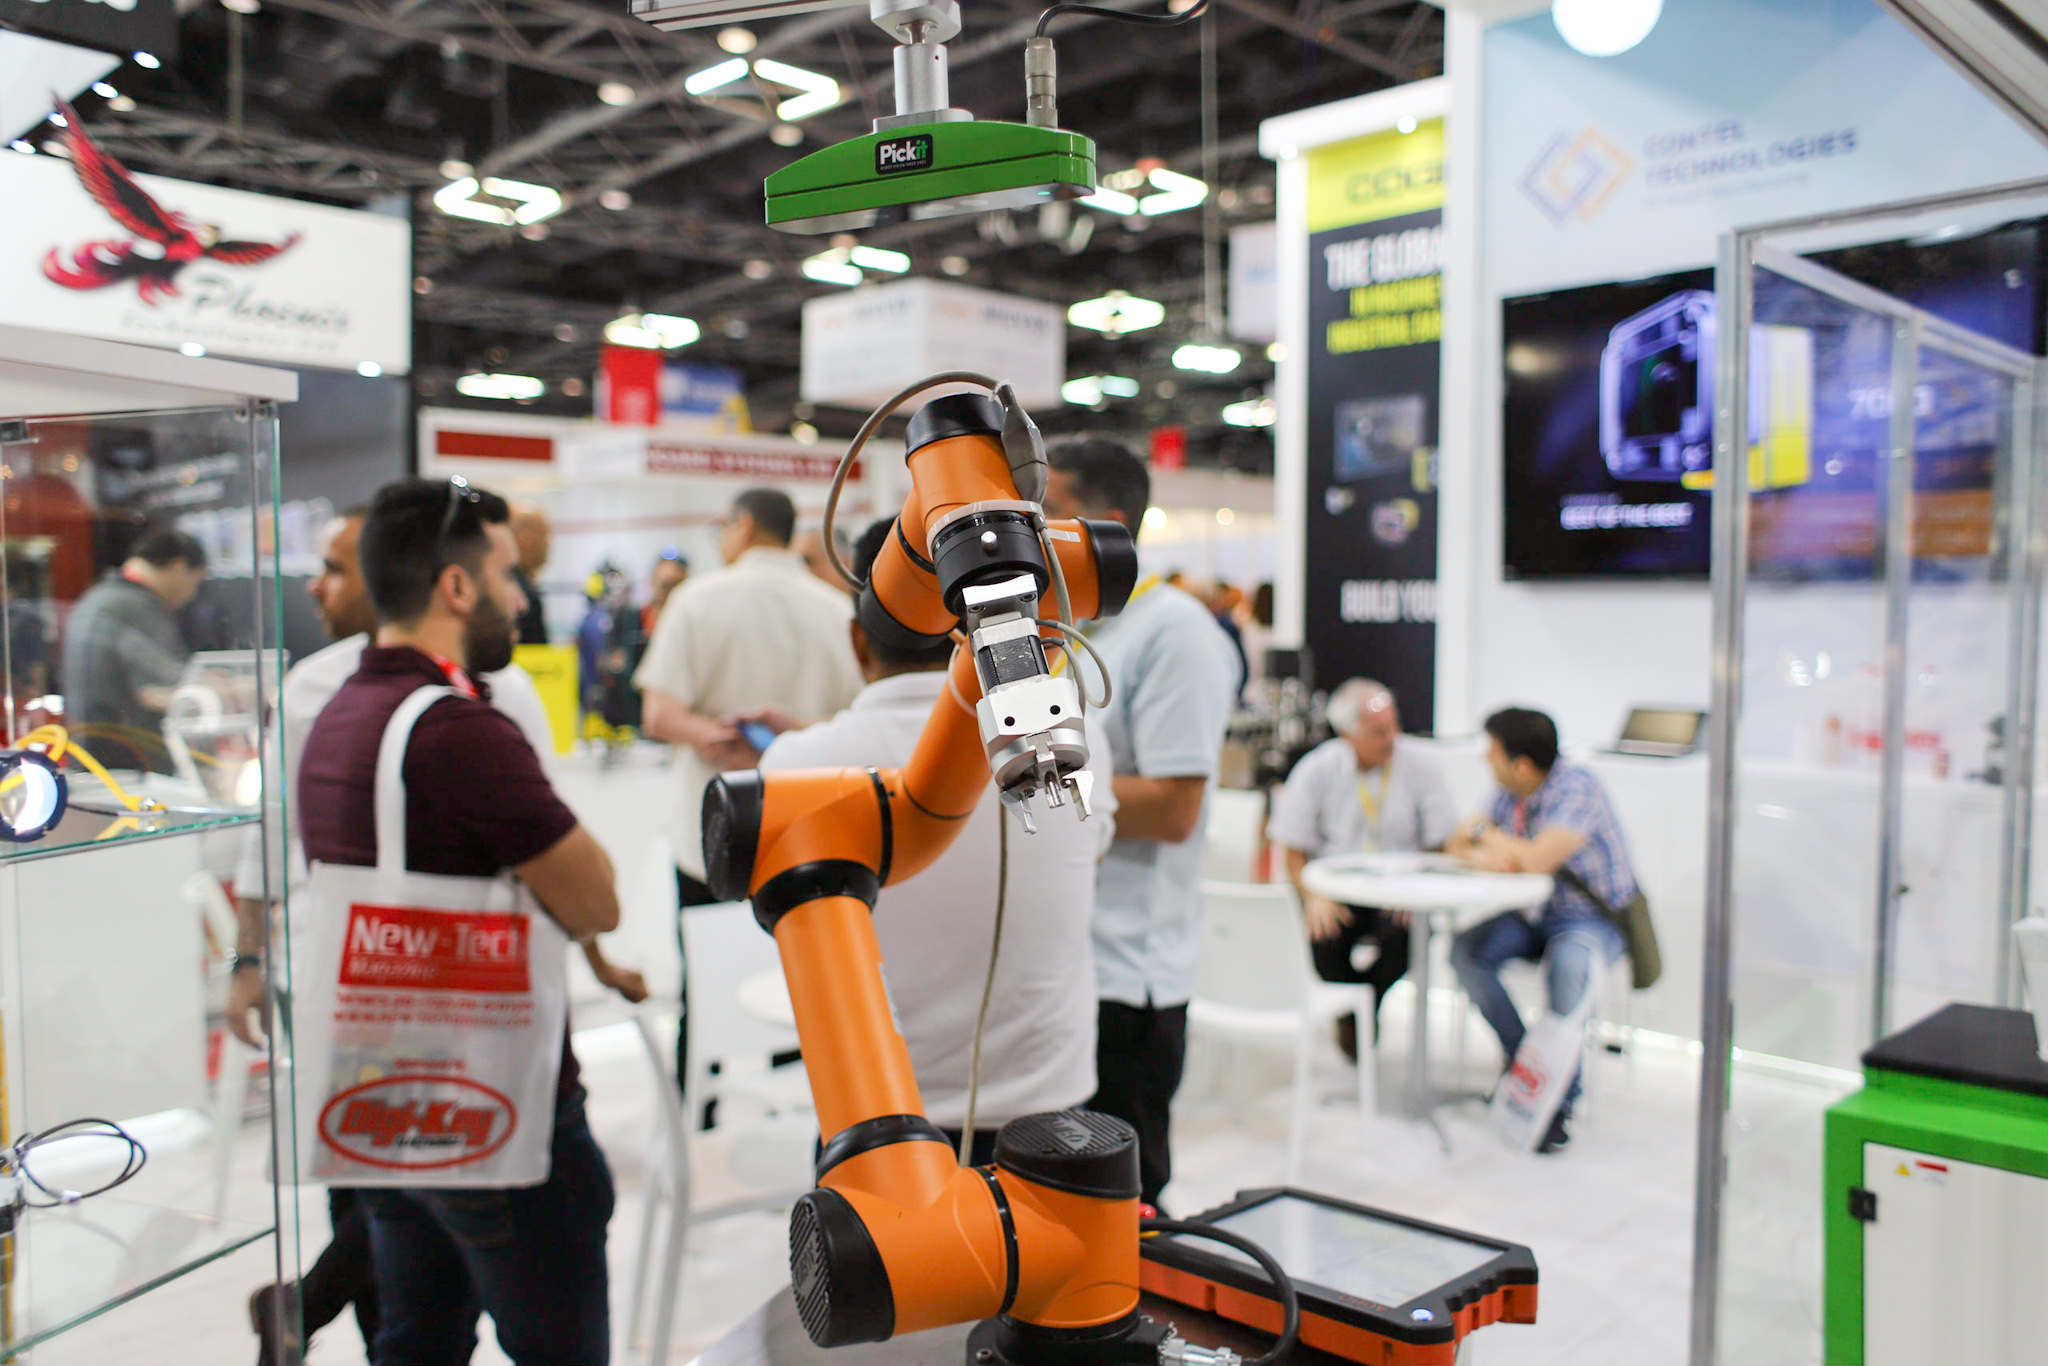 49% Of Workers Believe AI And Automation Will Have No Impact On Their Job